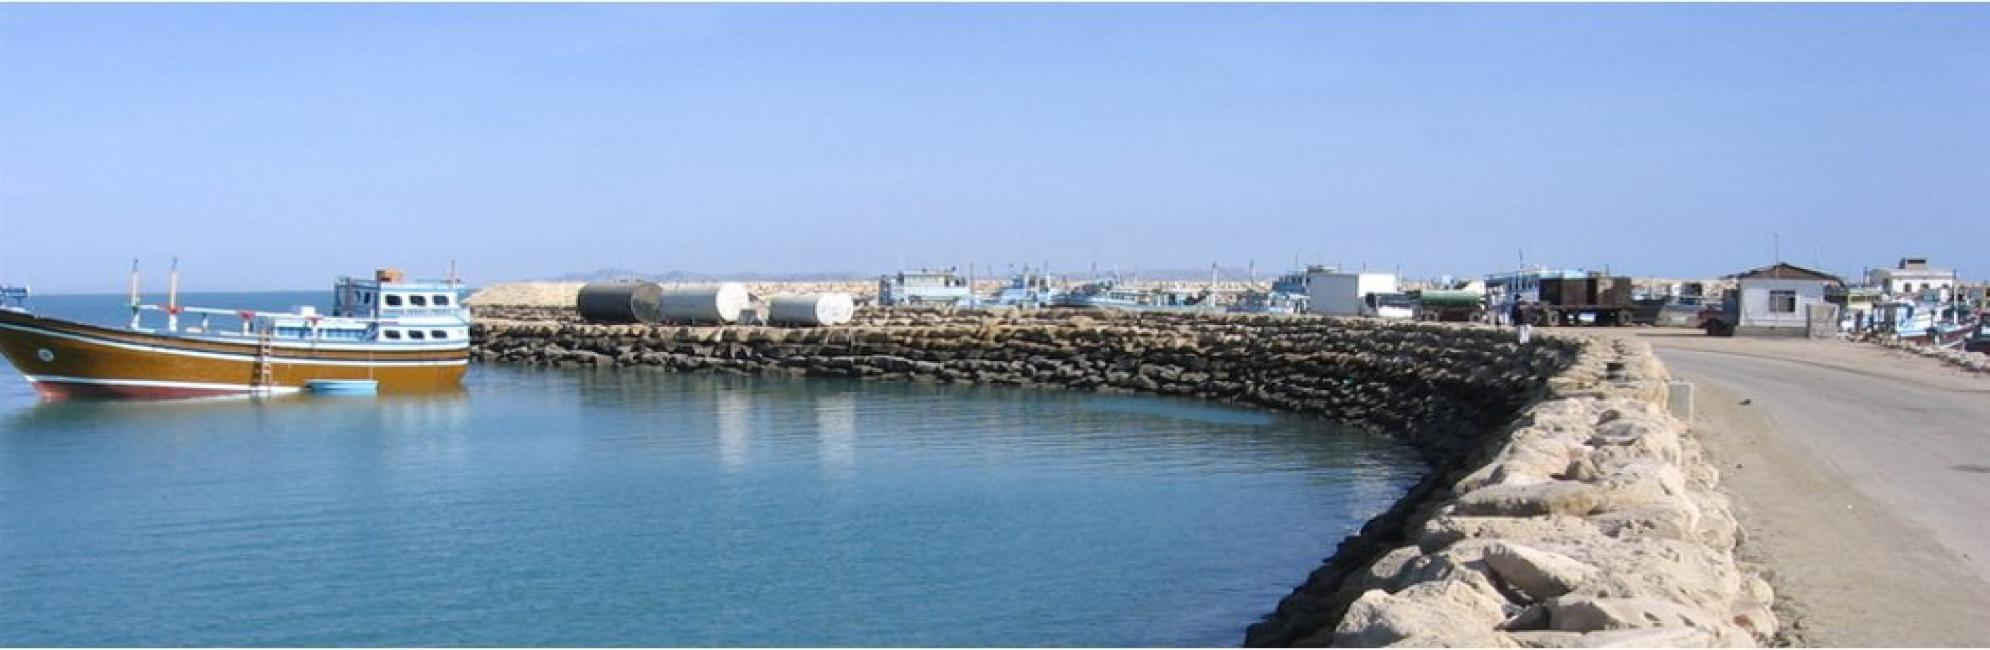 Design and construction management of Ramin & Konarak fishing floating piers, Chabahar Sistan&Baluchestan province